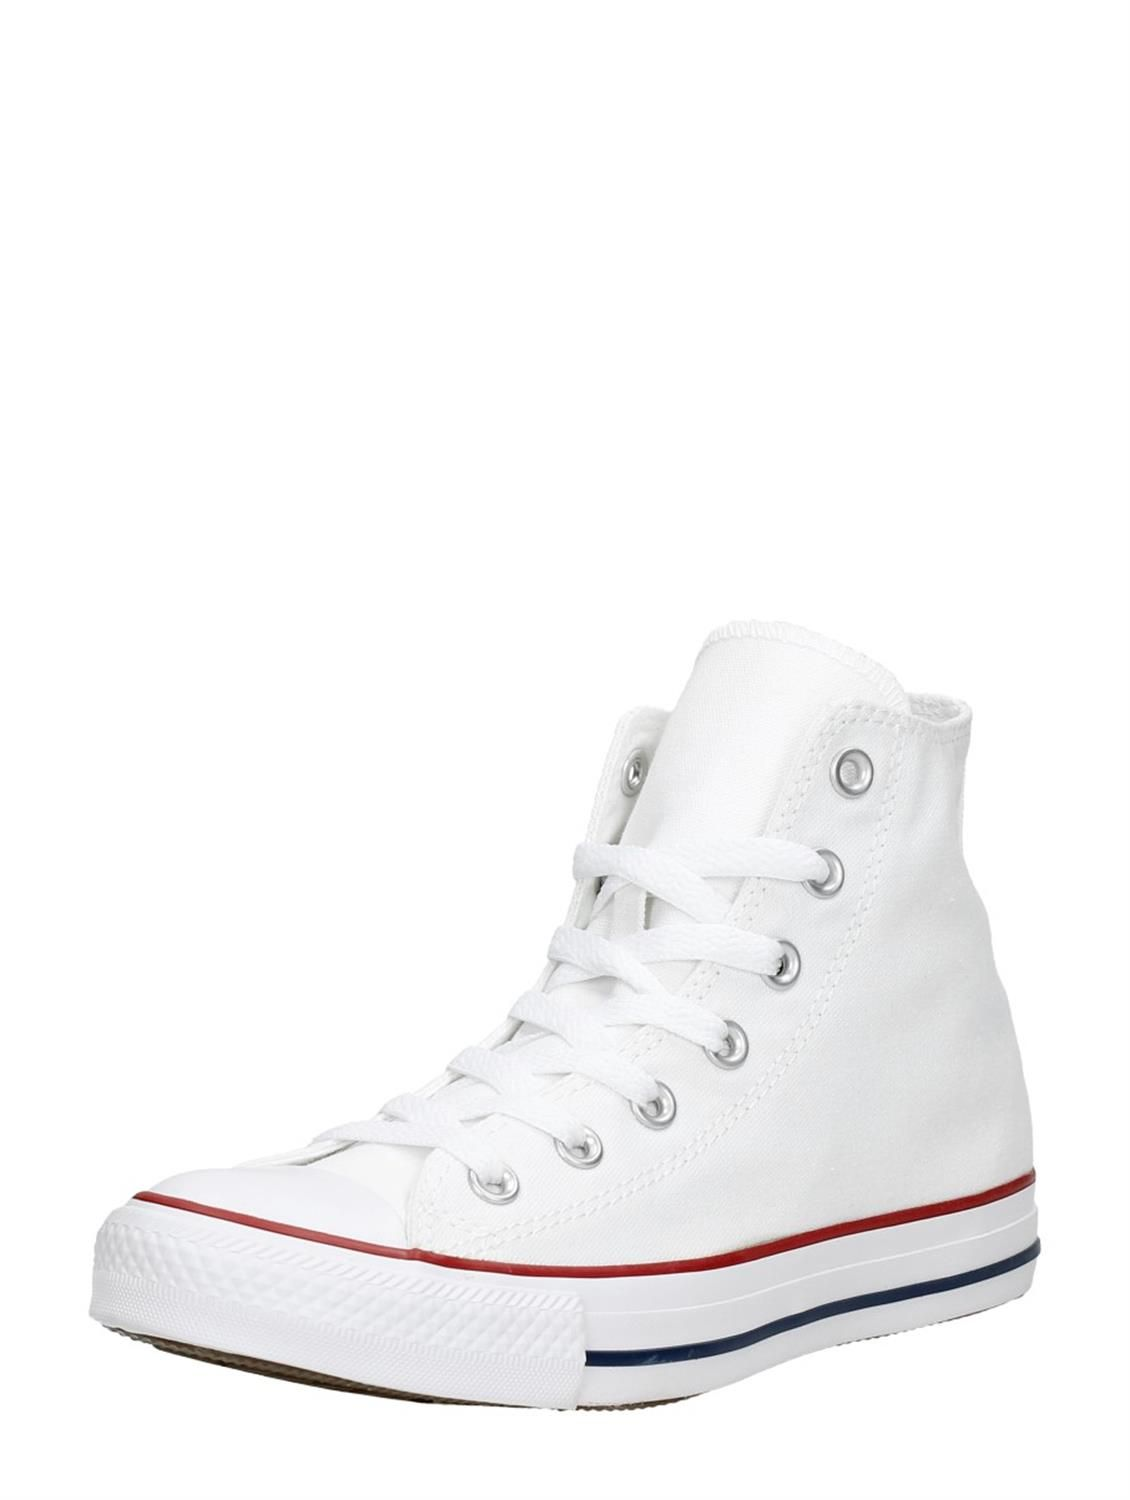 Converse Chuck Taylor All Star hoog wit dames | Chuck ...